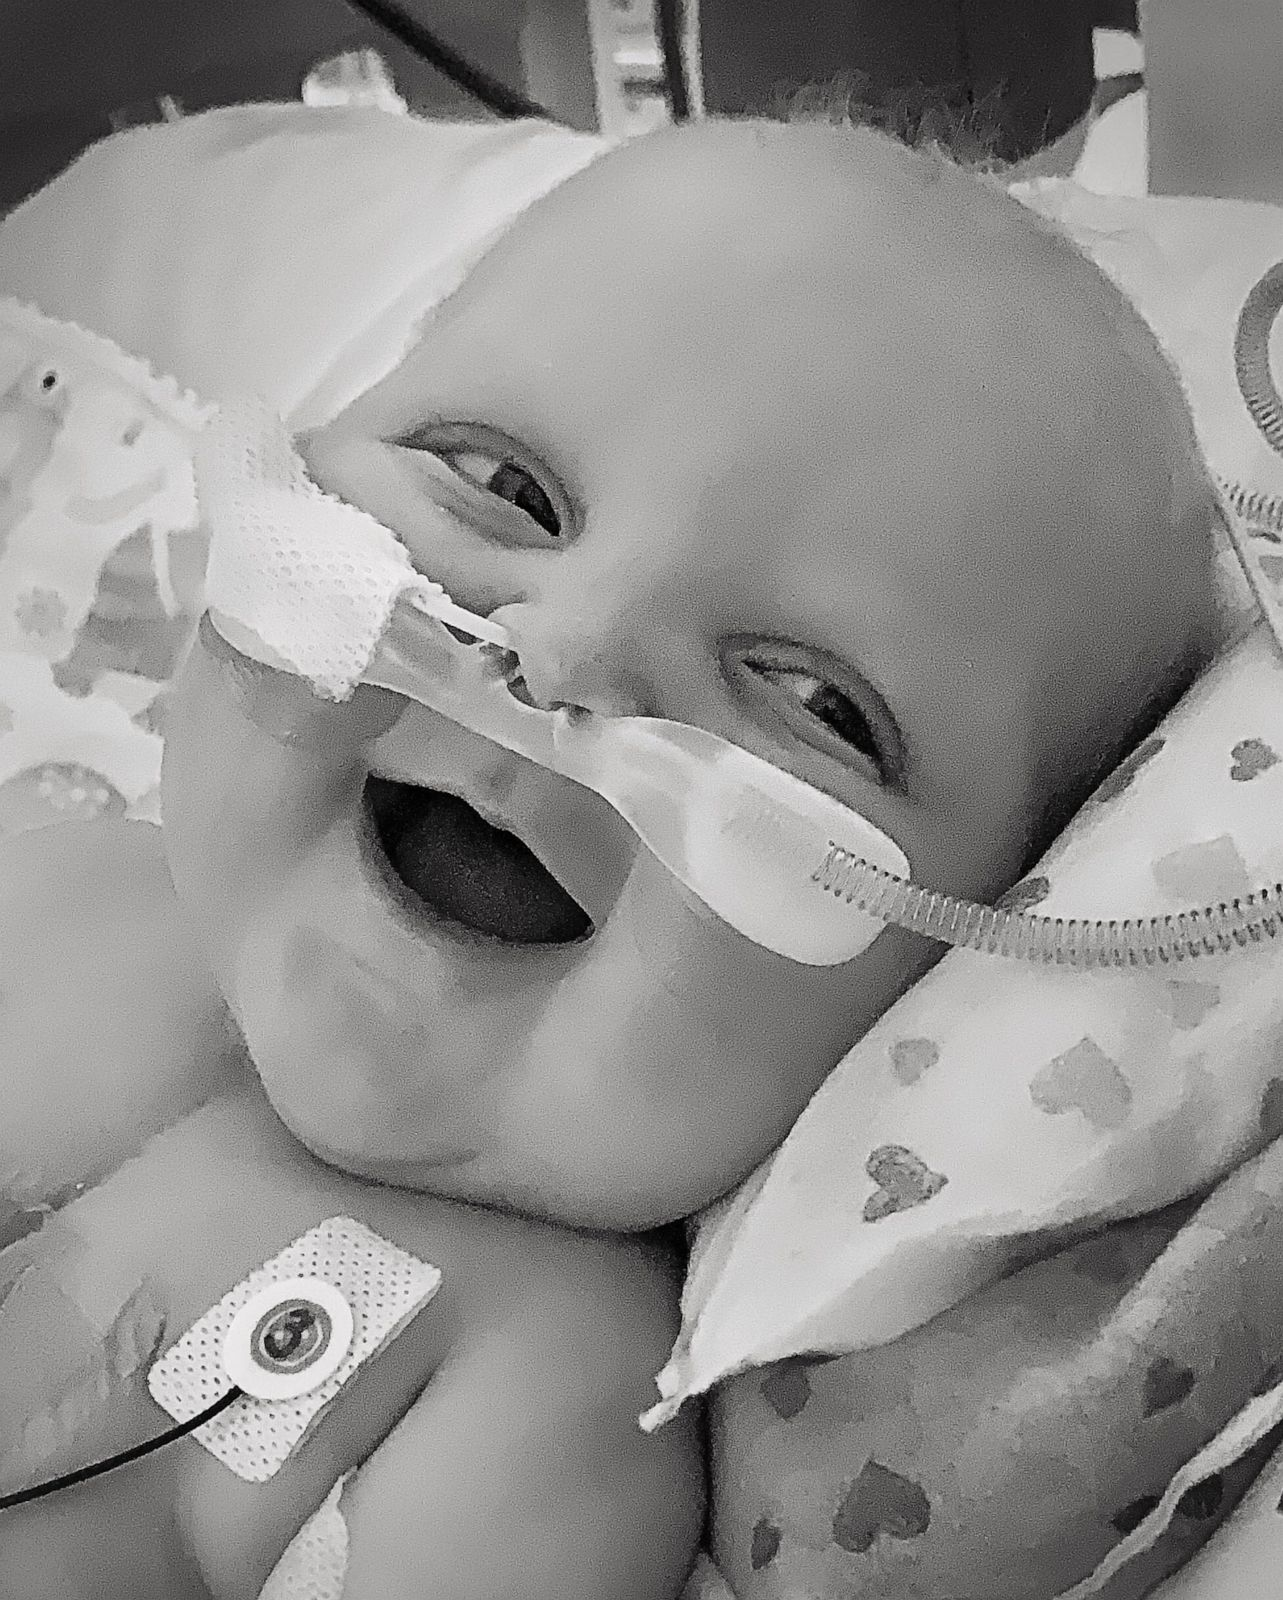 PHOTO: Teddy Nelson has spent 185 days in the hospital. Teddy was born with a congenital heart defect called hypoplastic left heart syndrome. On Nov. 13, the 6-month-old had his second open heart surgery.